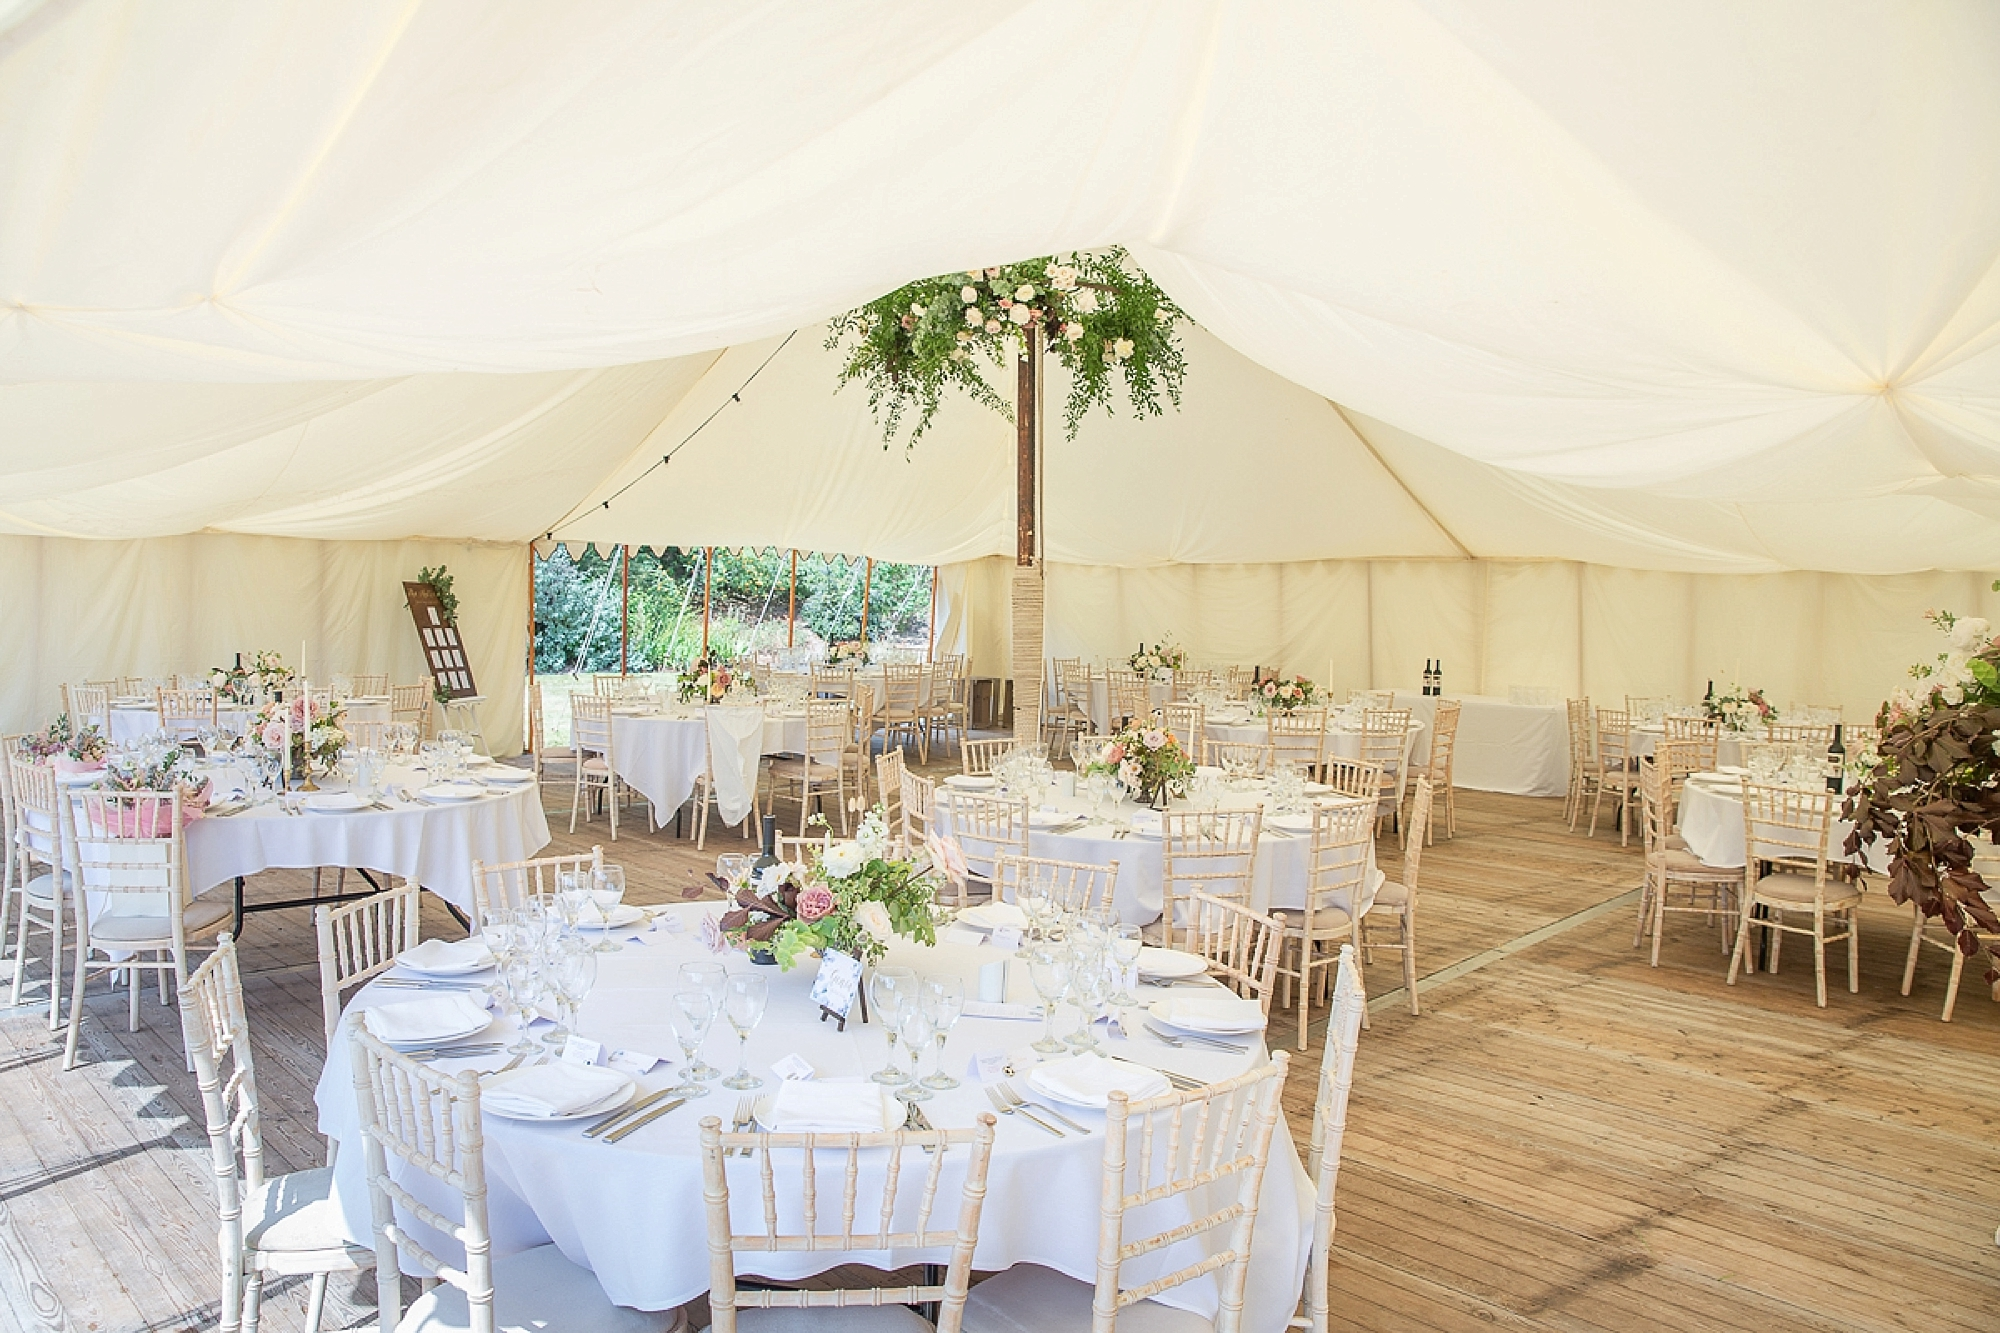 wedding marquee at Pynes House wedding with a large central pole with flowers